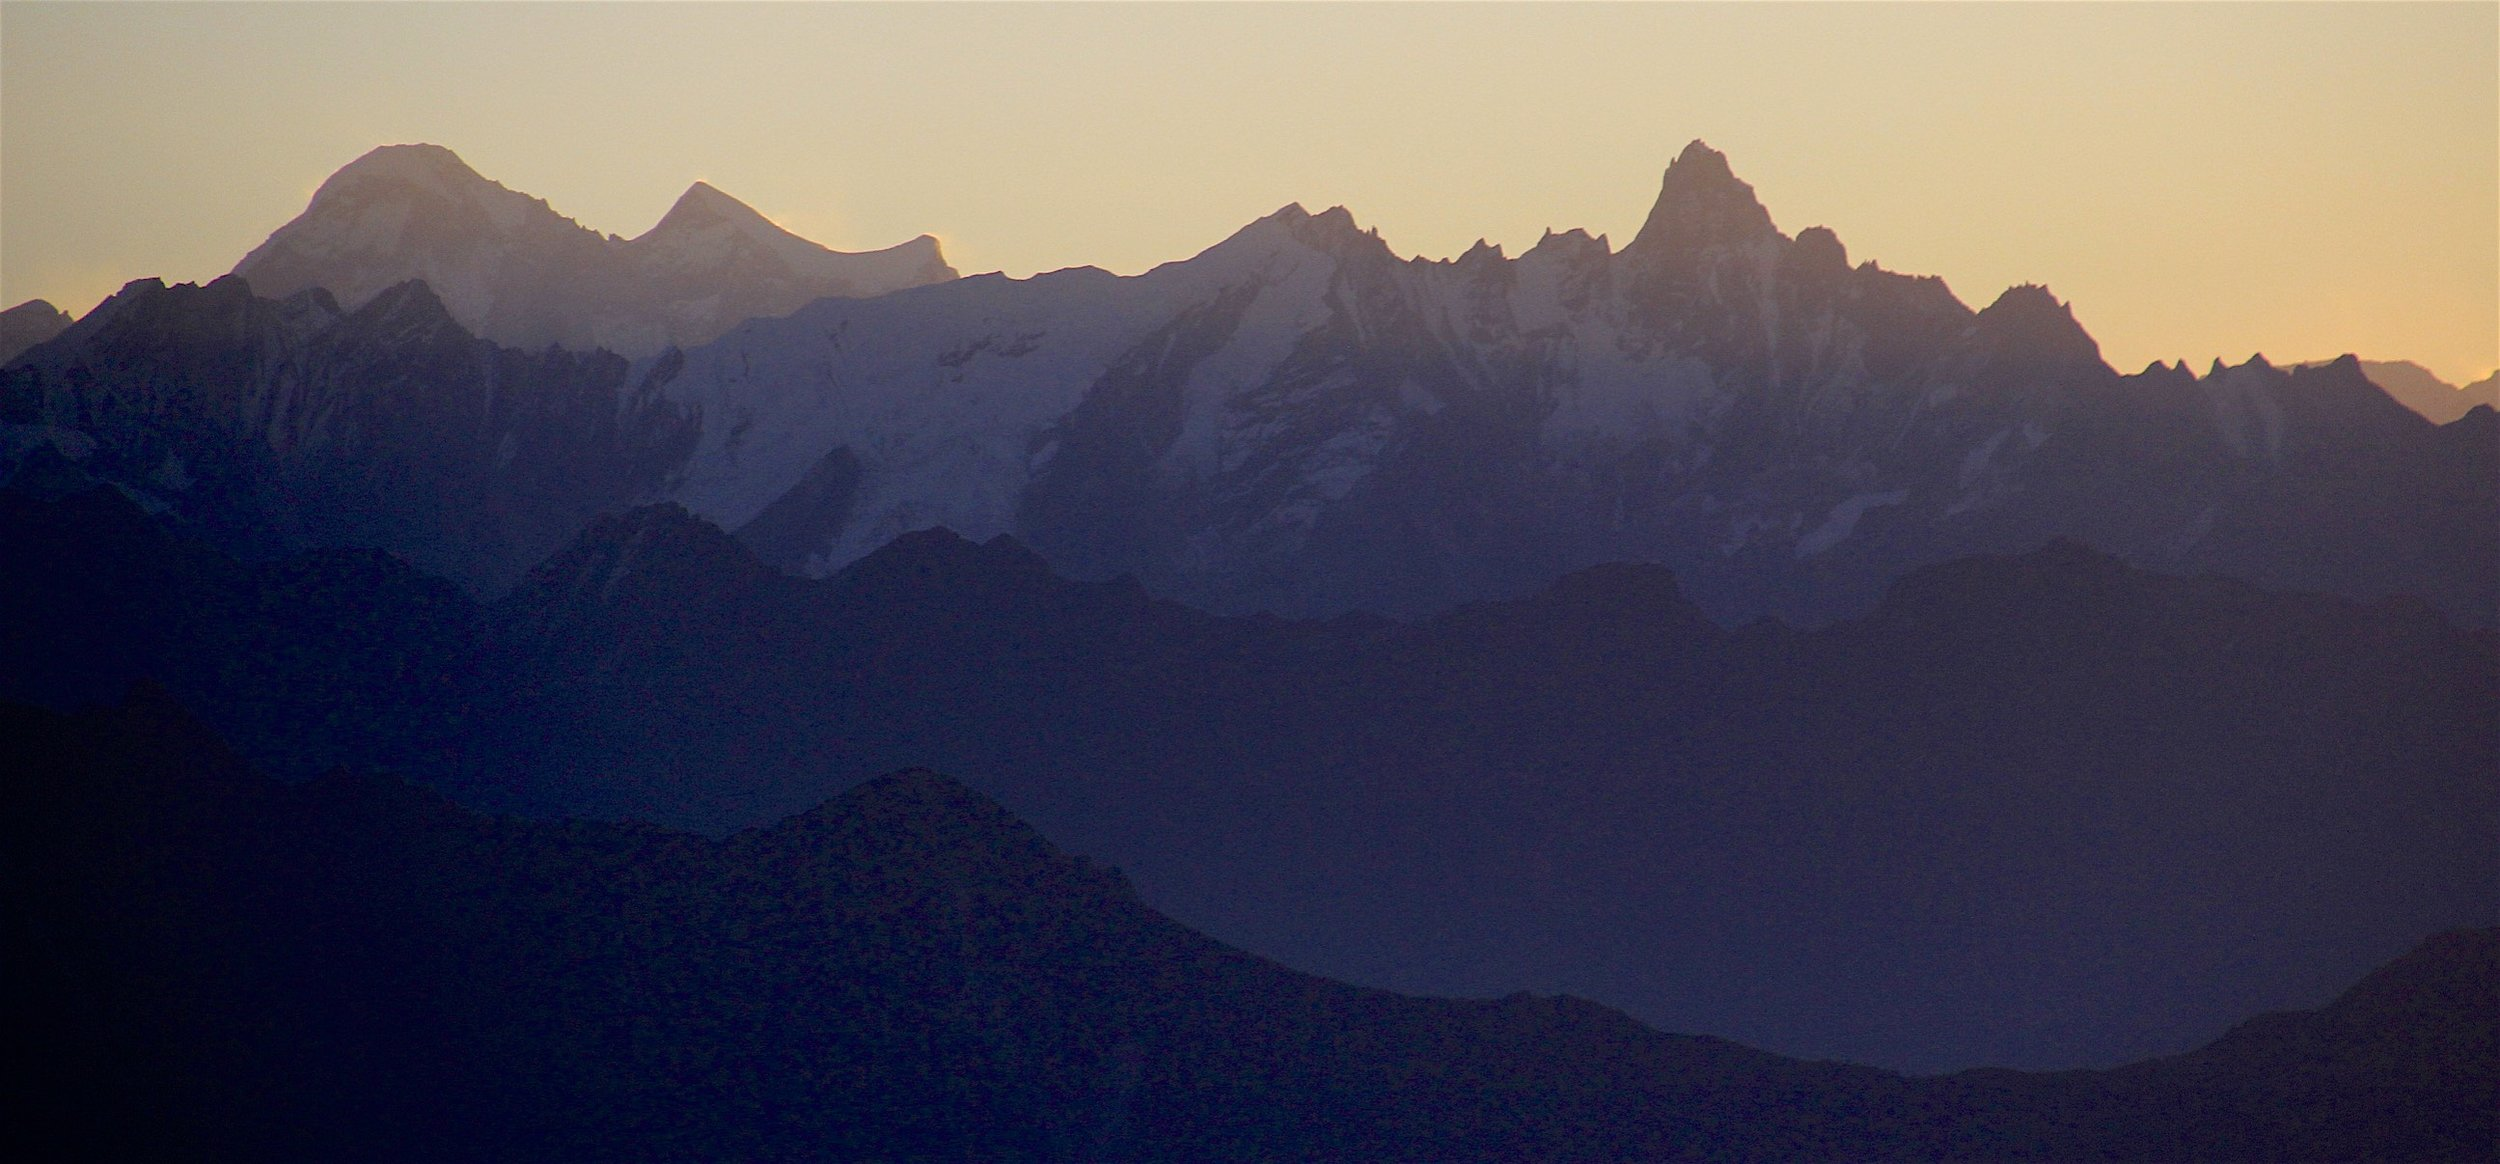 The Jugal Himal in Tibet right before the sunrise seen from our descent round from the Ganjala Pass.